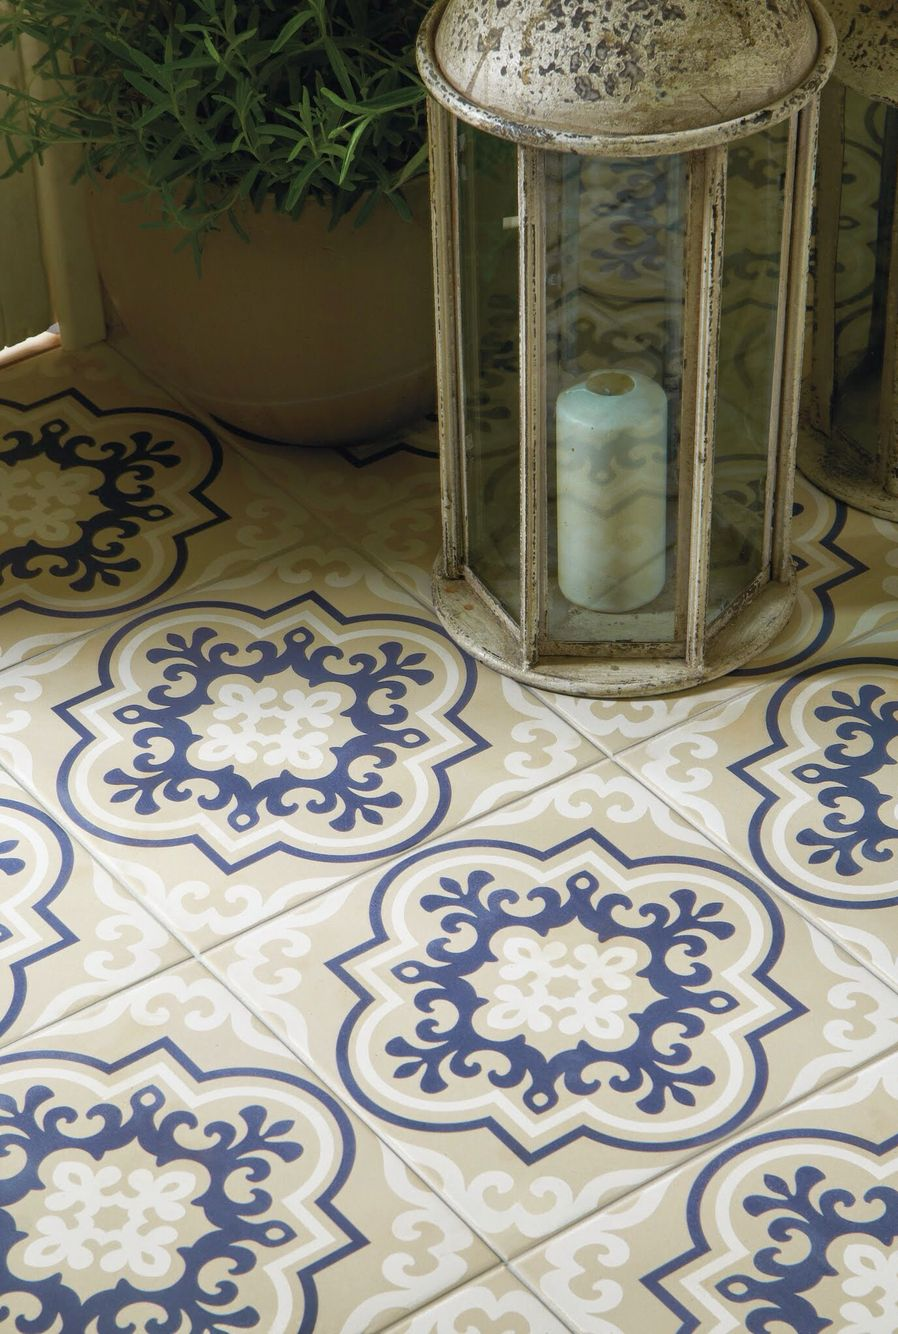 Vogue blue patterned floor tiles from the odyssey collection by original style available at welby wright tres chic